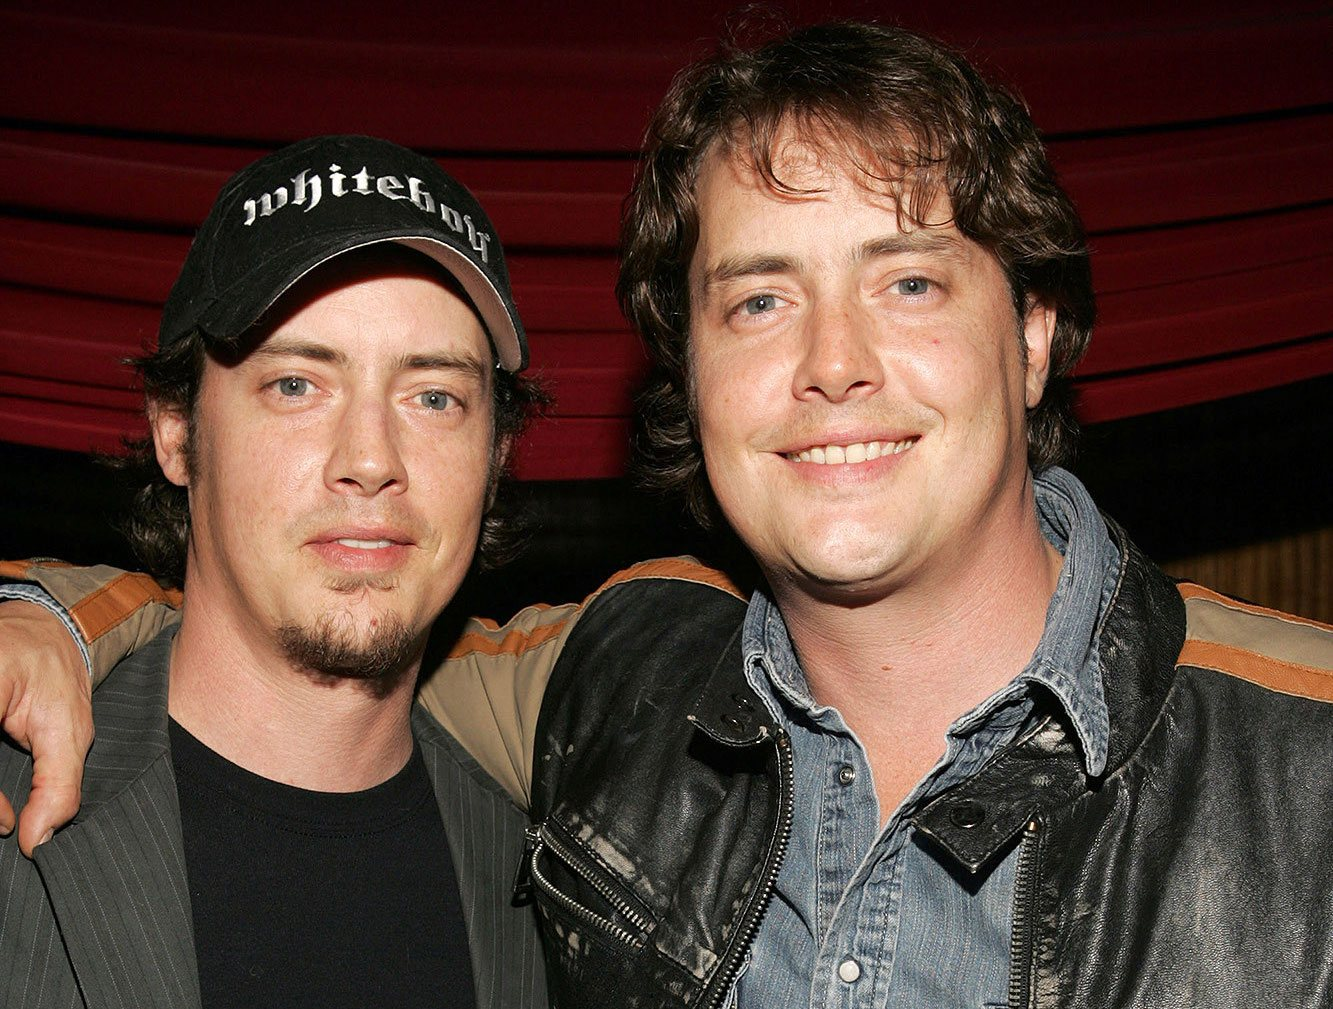 jeremy london jason 10 Roles You Never Knew Were Played By Twins